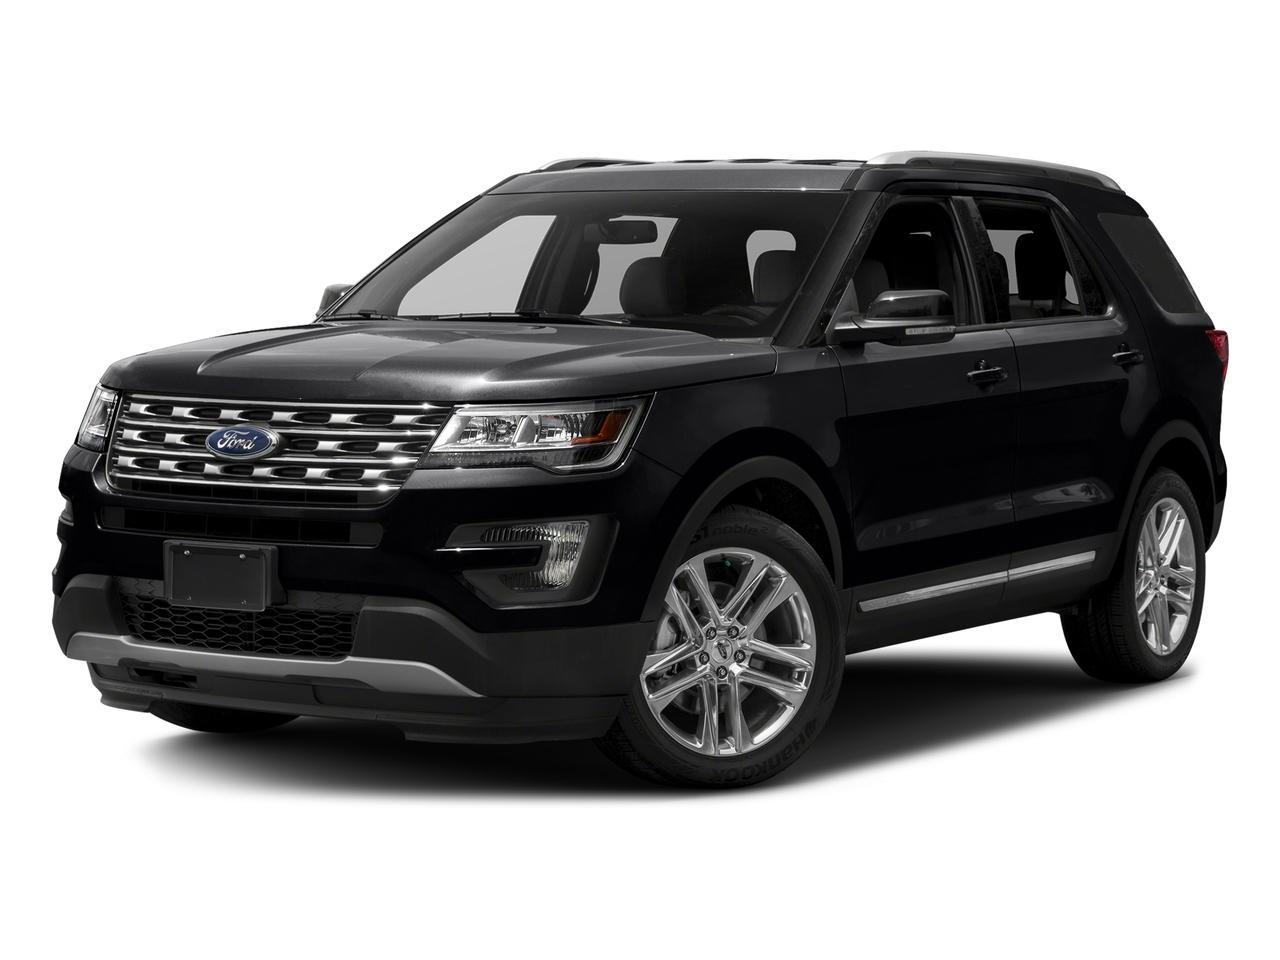 2016 Ford Explorer Vehicle Photo in Bowie, MD 20716